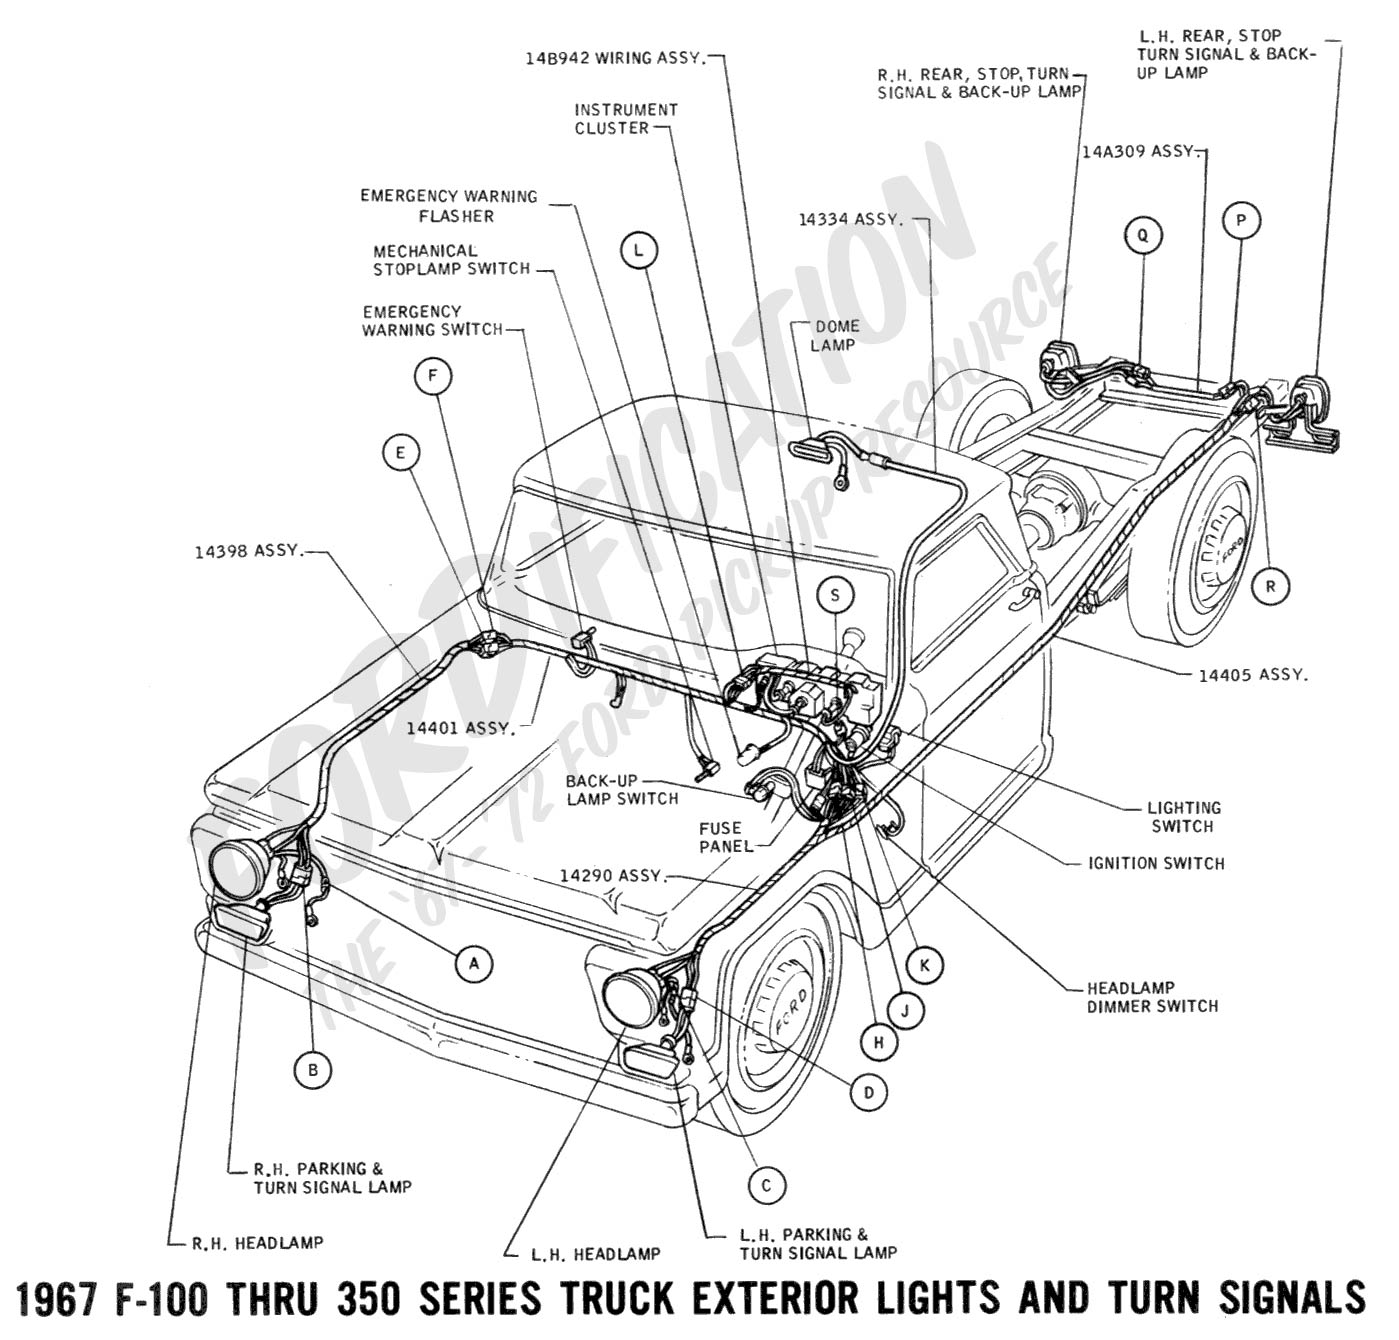 wiring 1967extlights01 ford truck technical drawings and schematics section h wiring 1999 ford ranger xlt wiring diagrams at nearapp.co